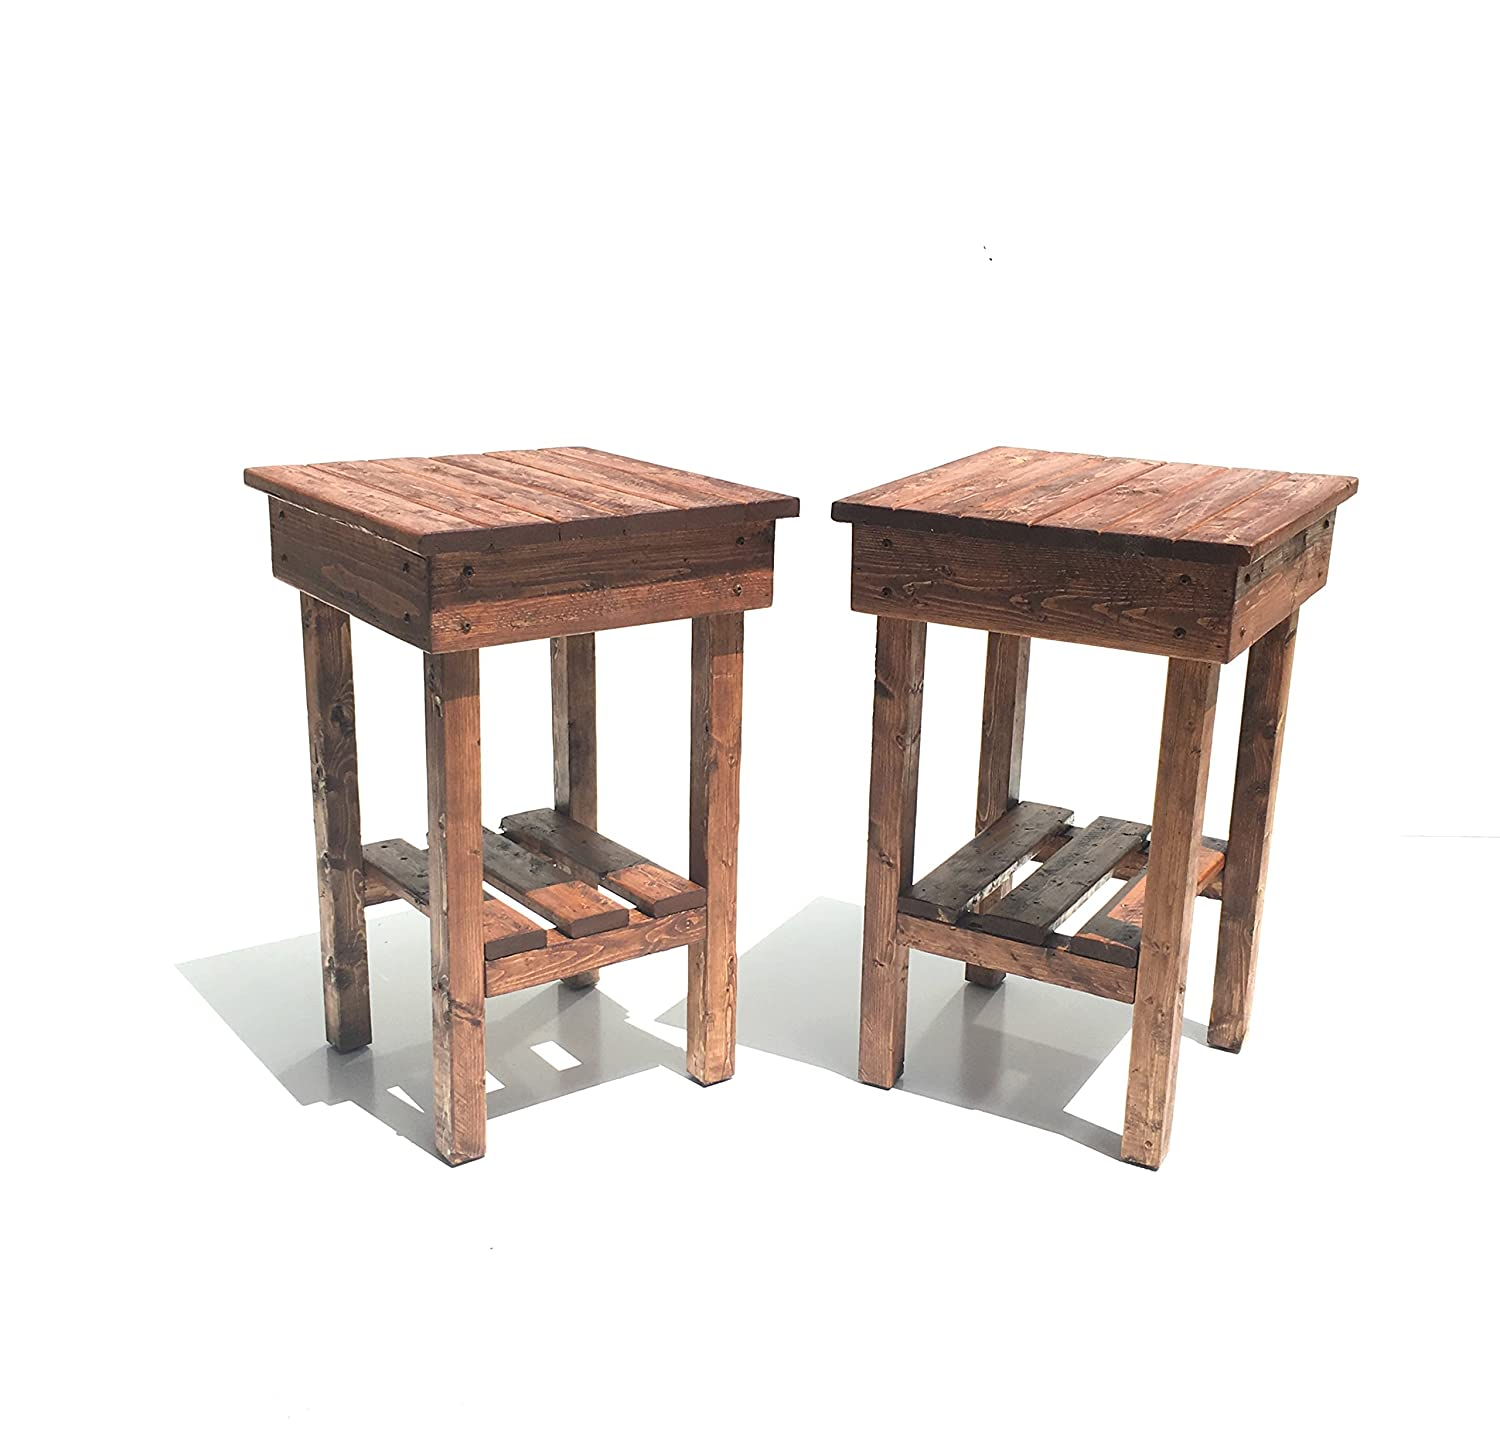 Night Stand Set/ End Table Set/Two Rustic End Table/2 Rustic Side Table/Bedside Table/Aged/Vintage End Table/Handmade/Custom New Materials/Farmhouse Table